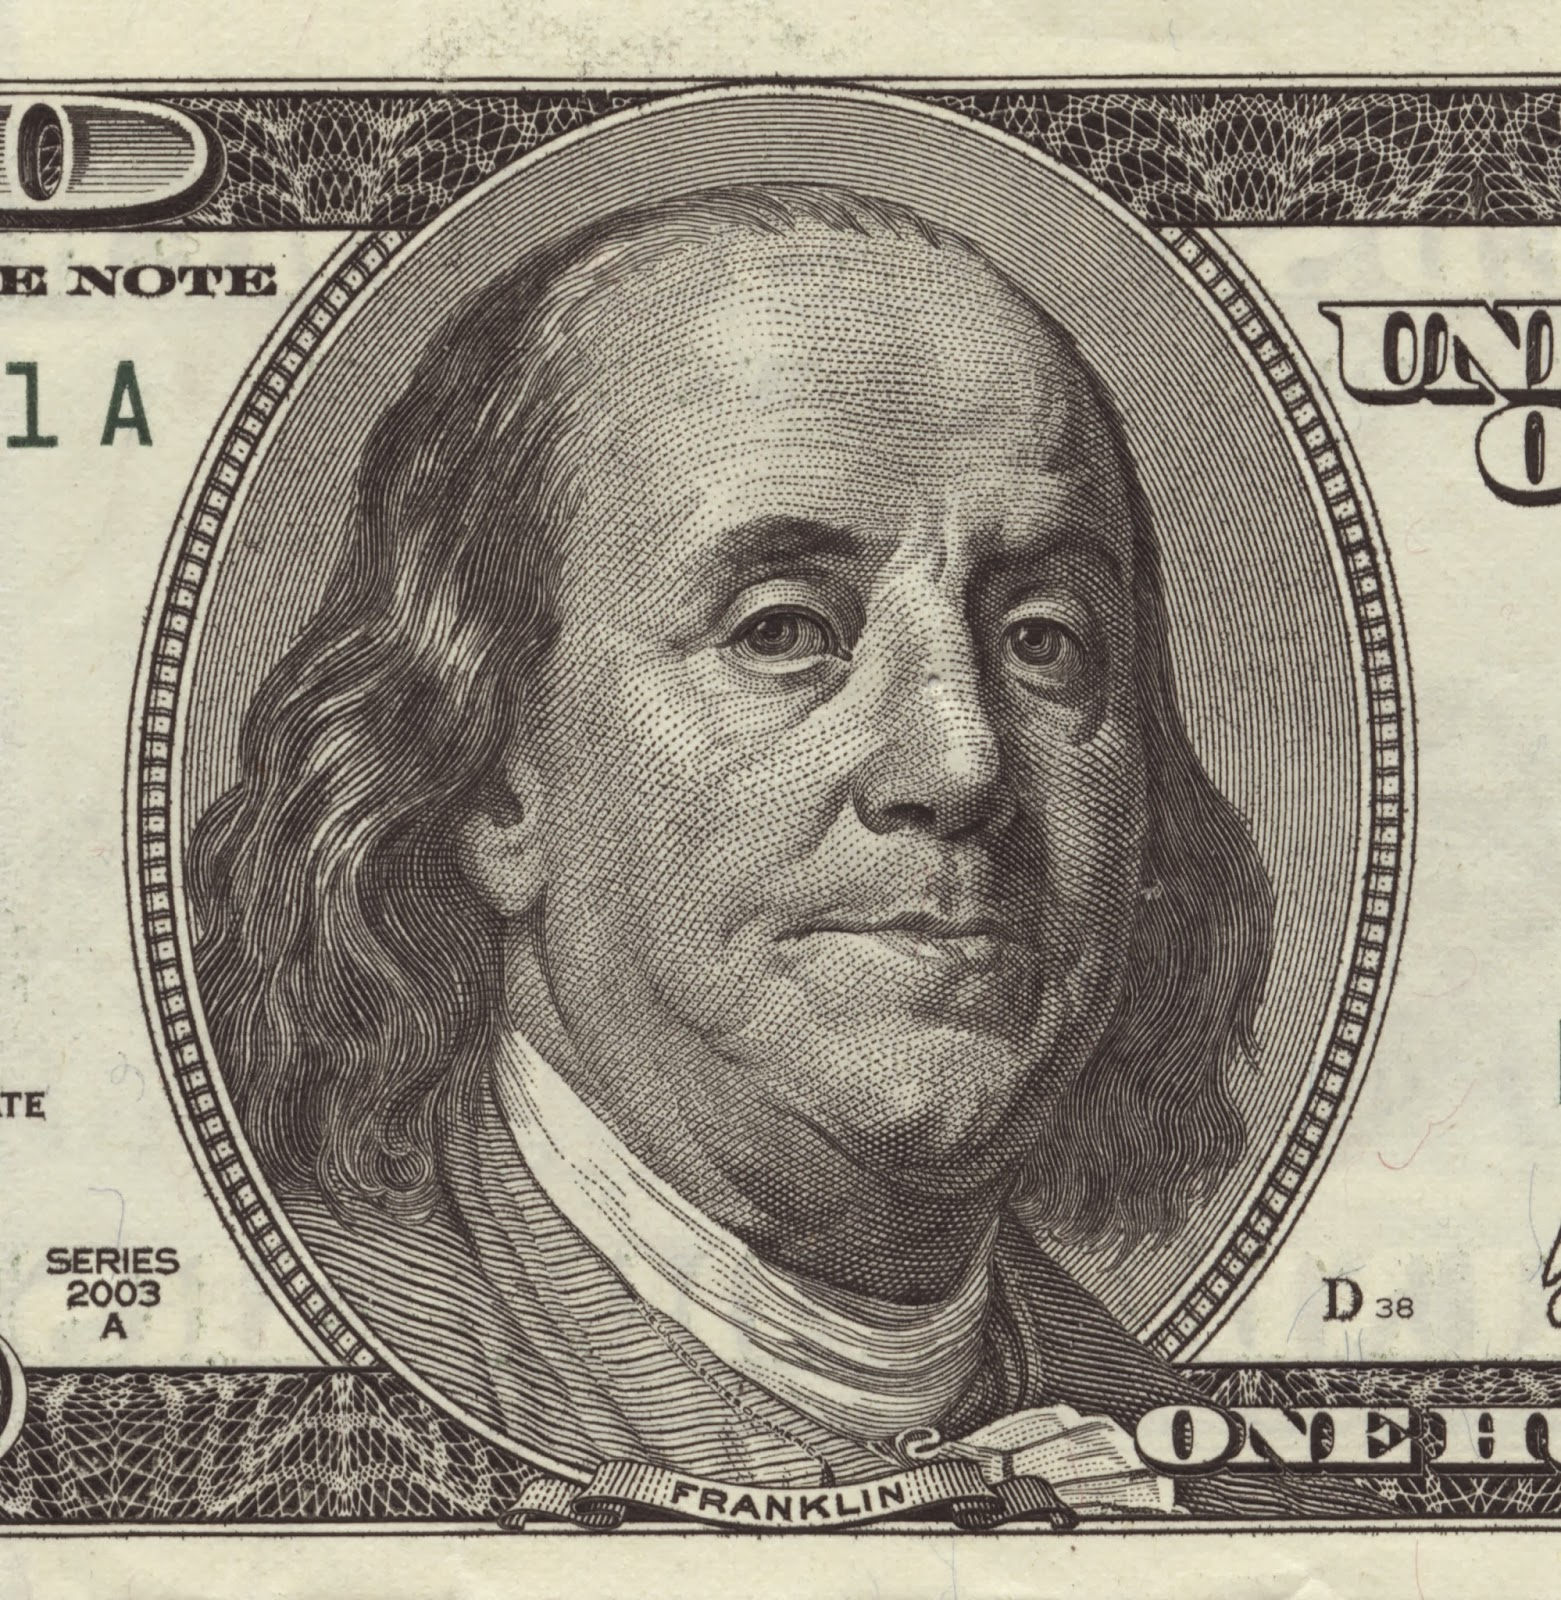 benjamin franklin enlightenment essays 91 121 113 106 benjamin franklin enlightenment essays